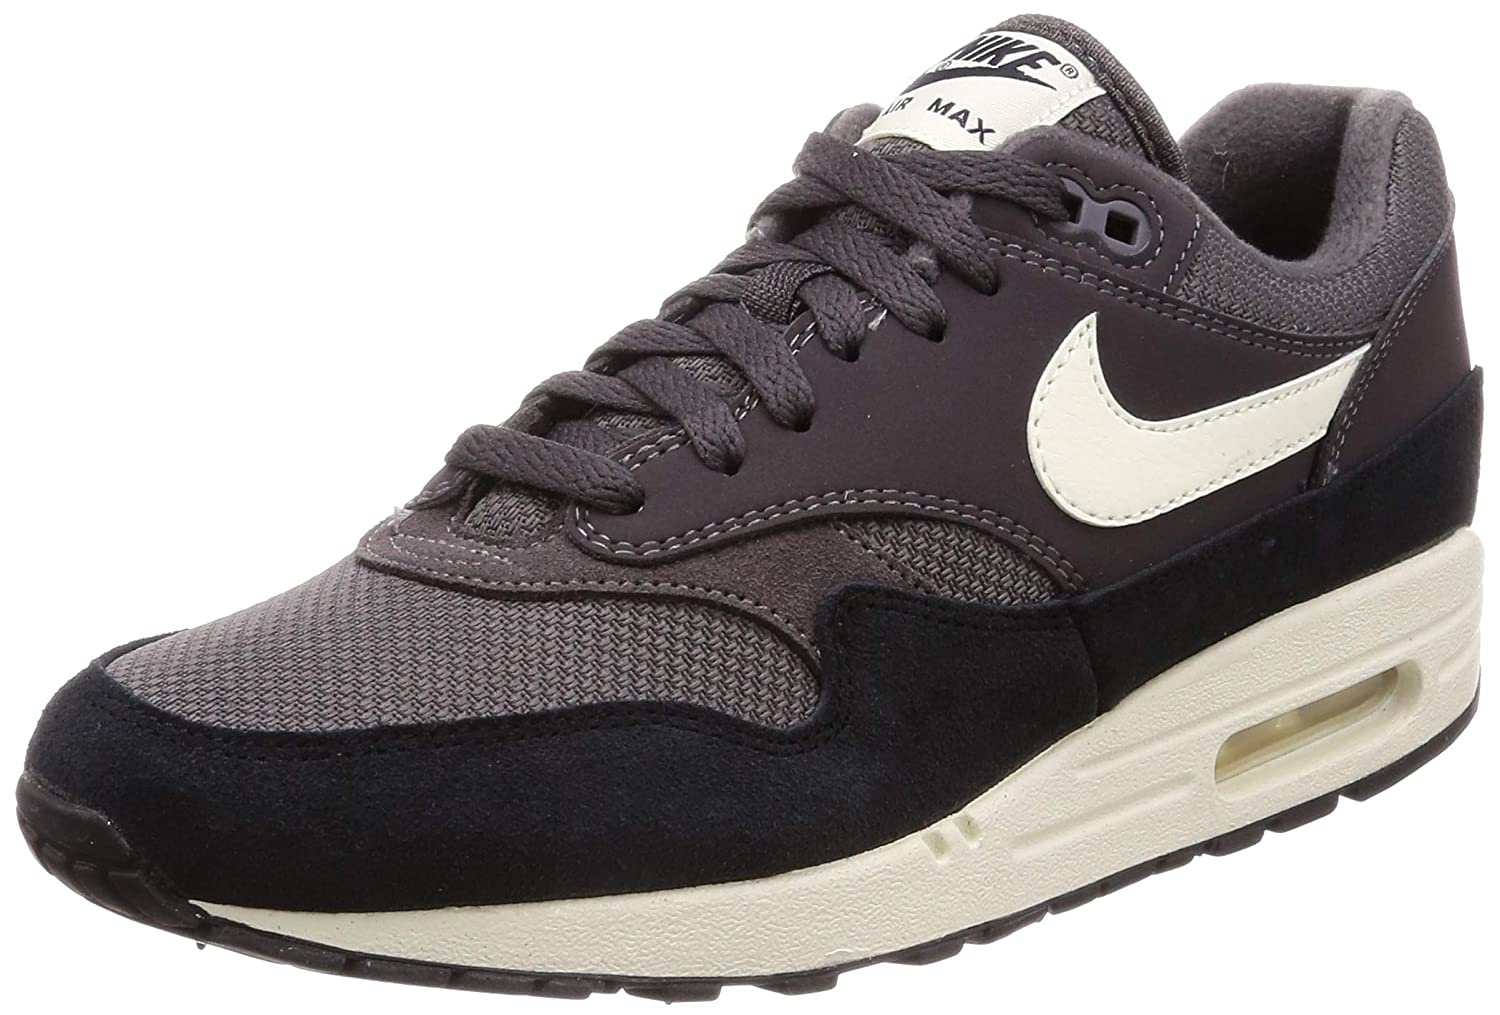 | Nike Air Max 1 Thunder GreySail Sail Black | Shoes